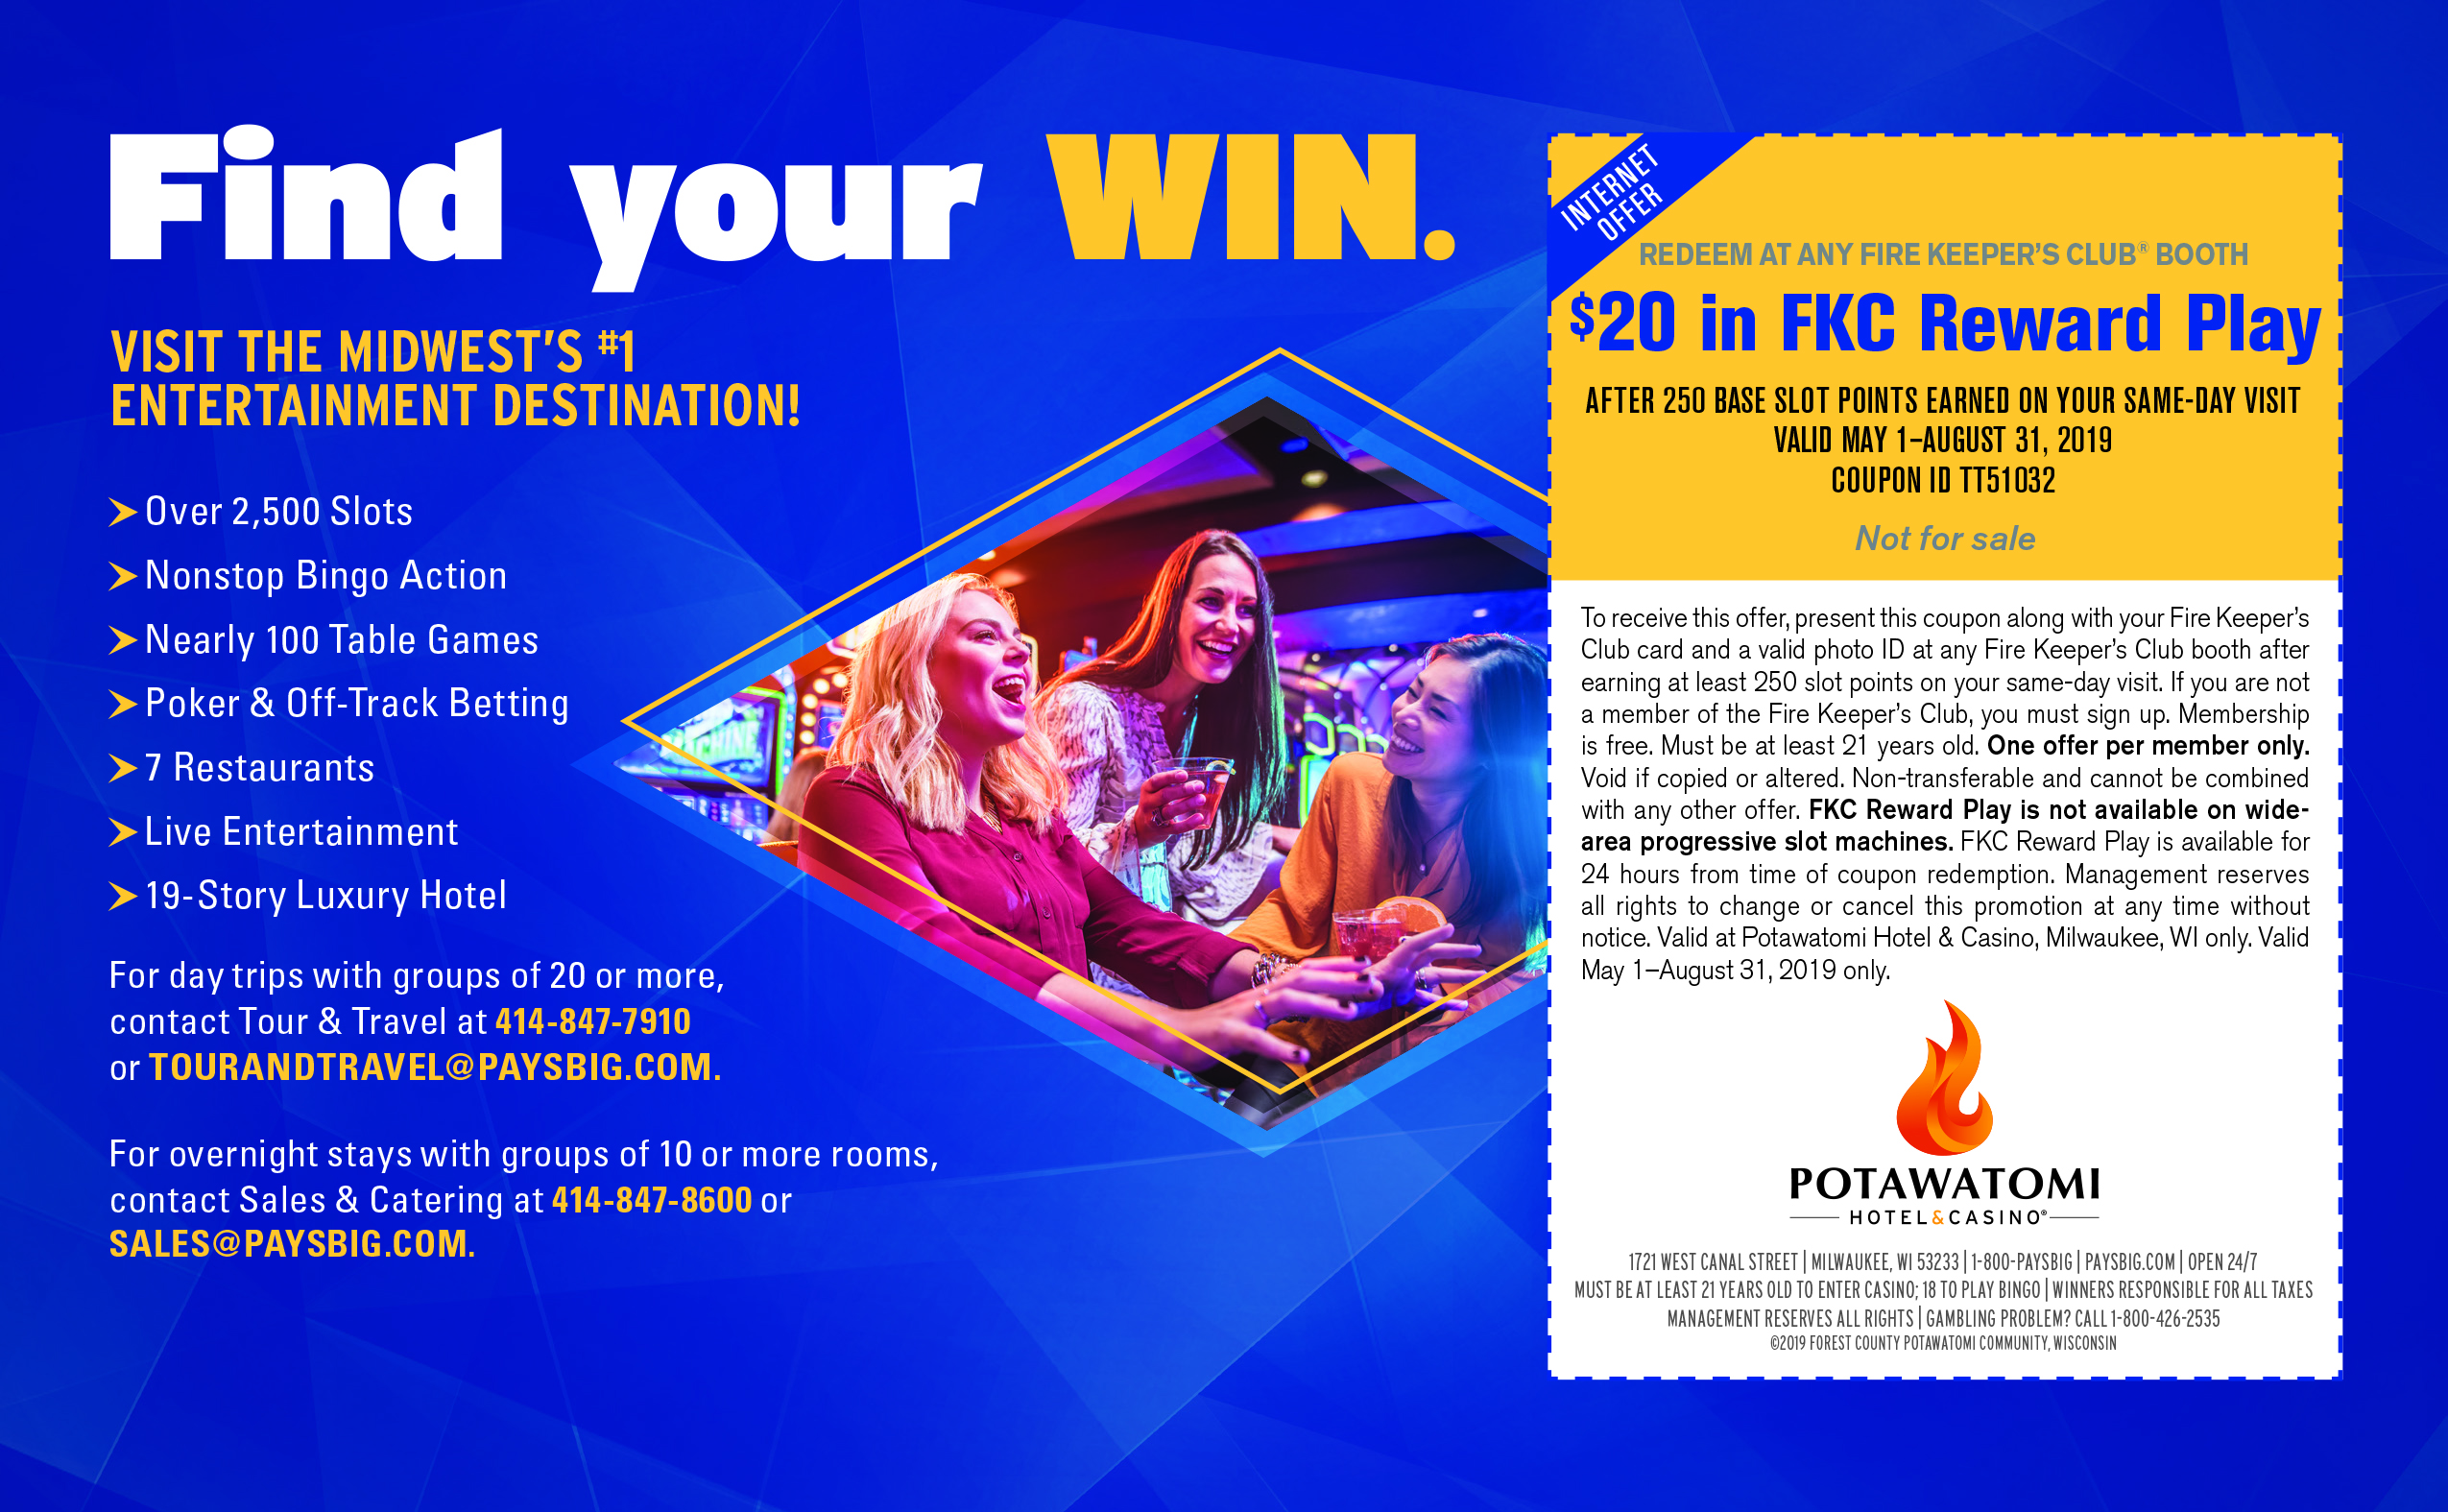 $20 in Fire Keepers Club Reward Play at Potawatomi Hotel & Casino (5/1/19 - 8/31/19)